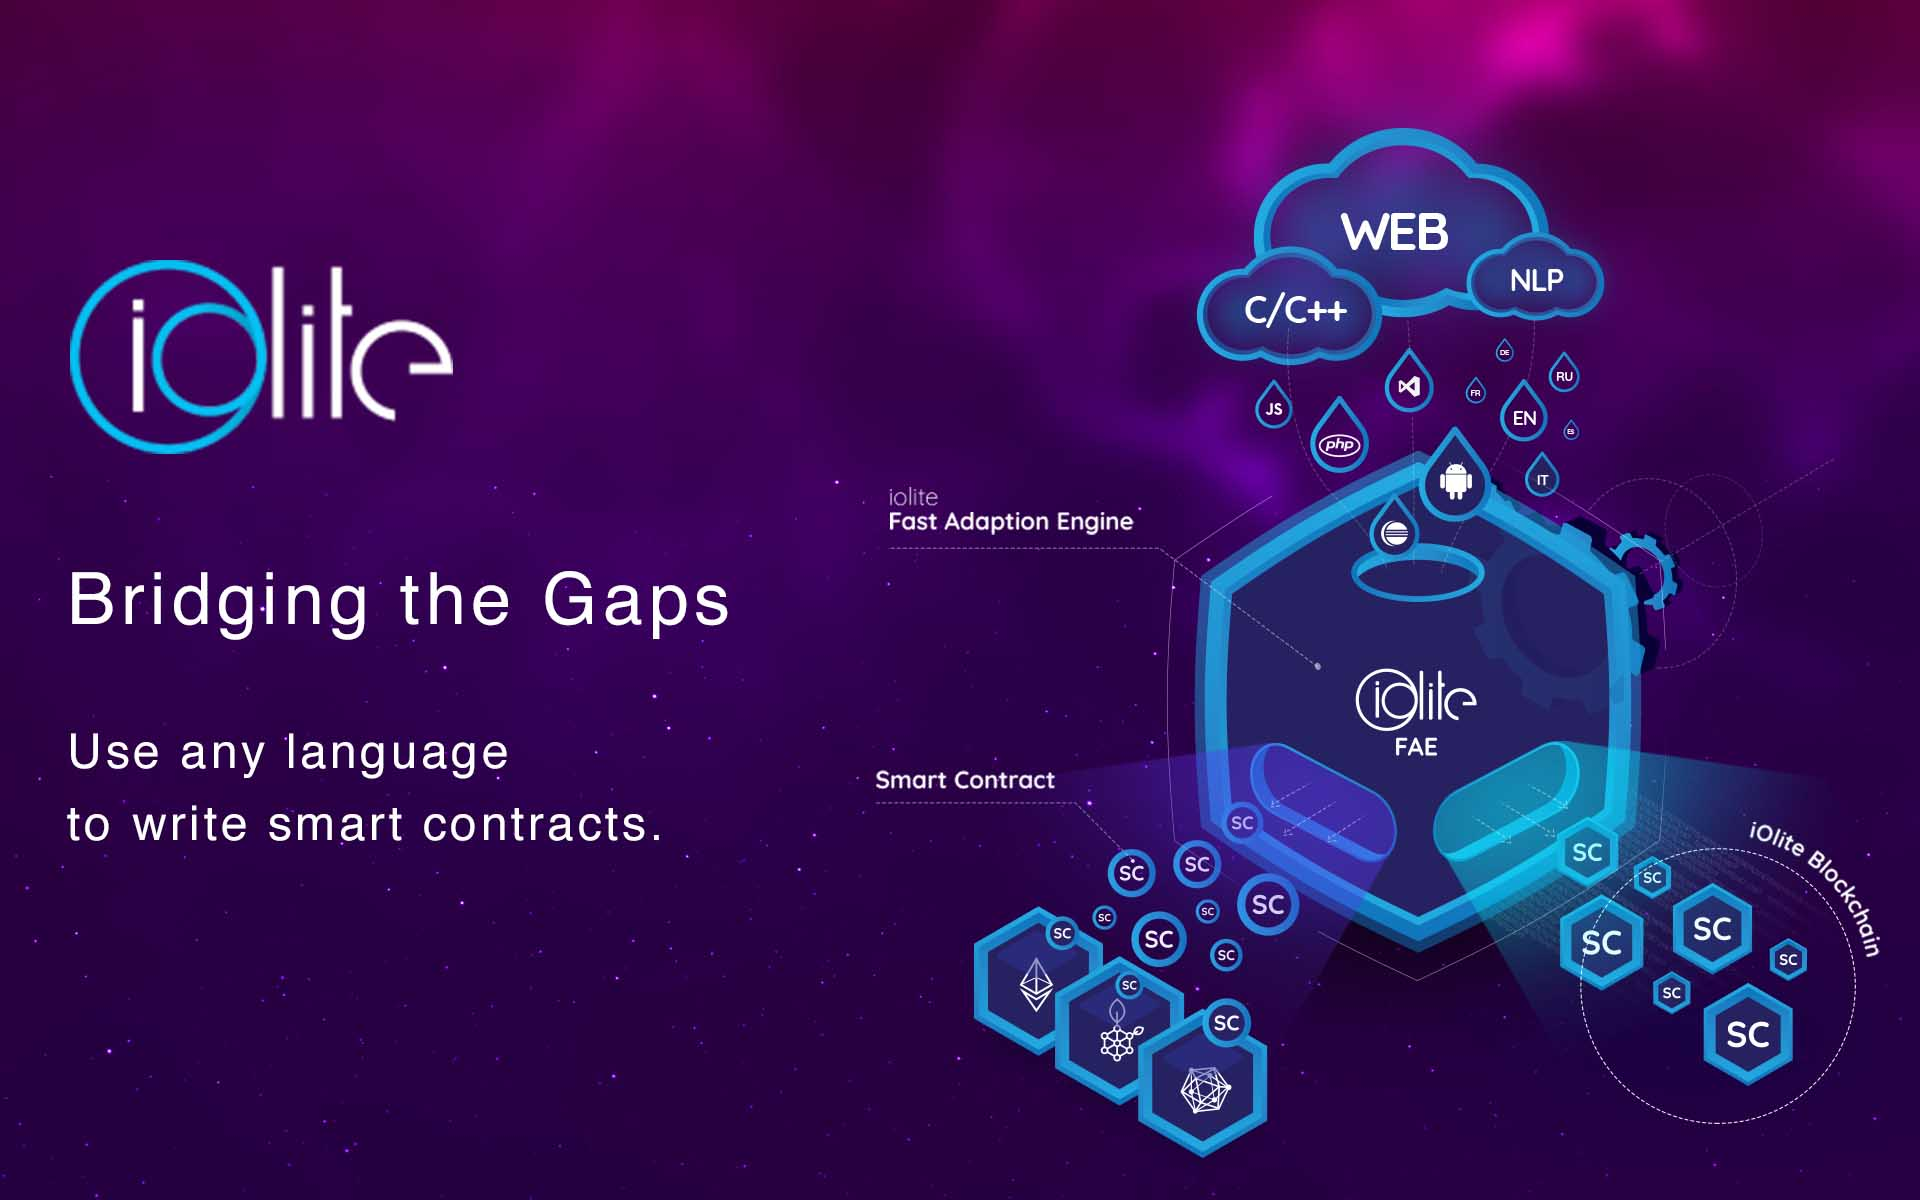 iOlite is Using AI to Build an All-inclusive Smart Contract Future